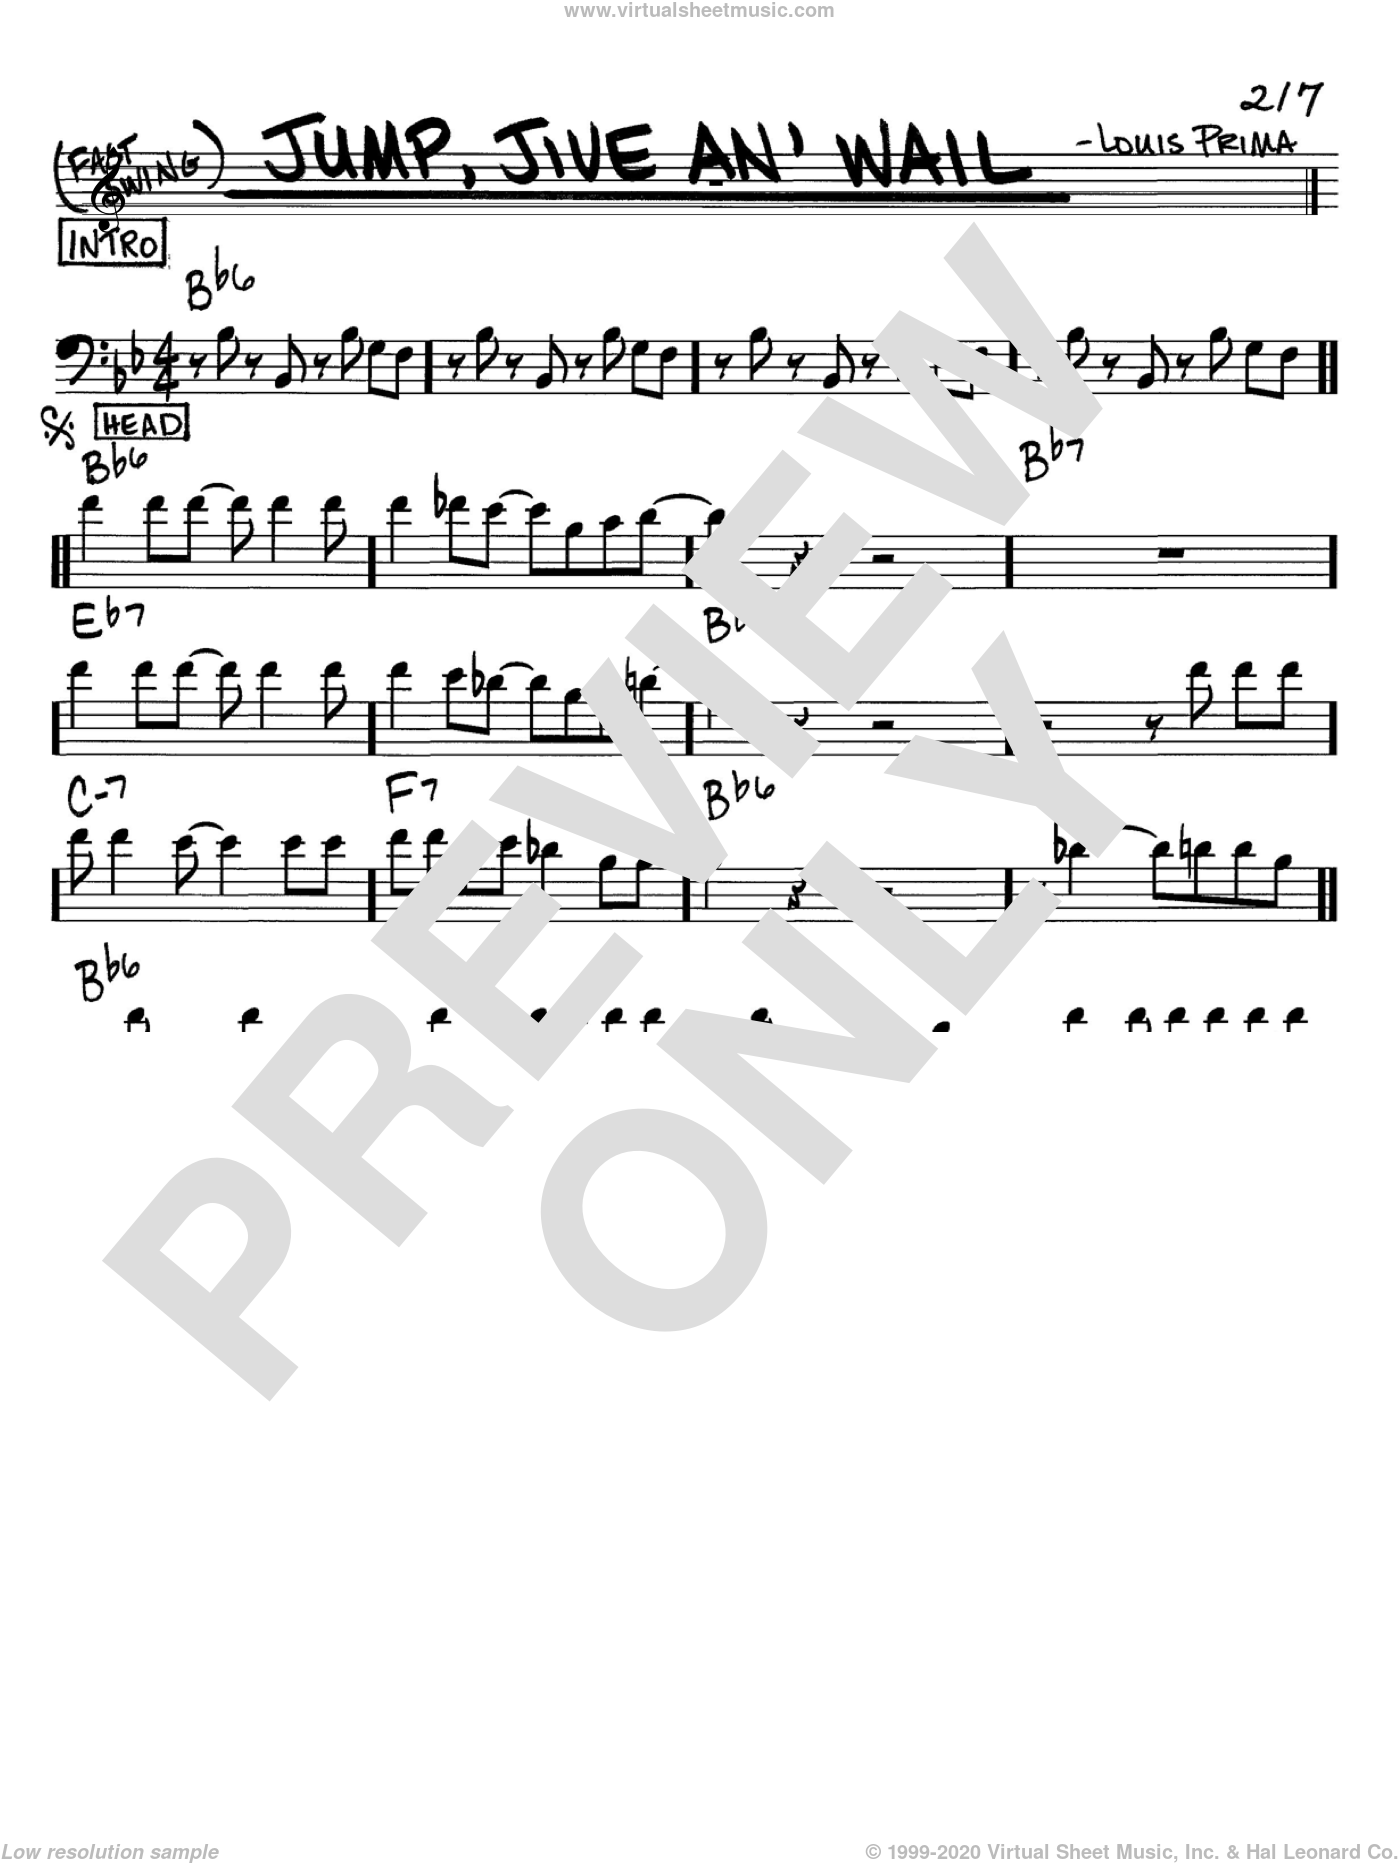 Jump, Jive An' Wail sheet music for voice and other instruments (Bass Clef ) by Louis Prima. Score Image Preview.